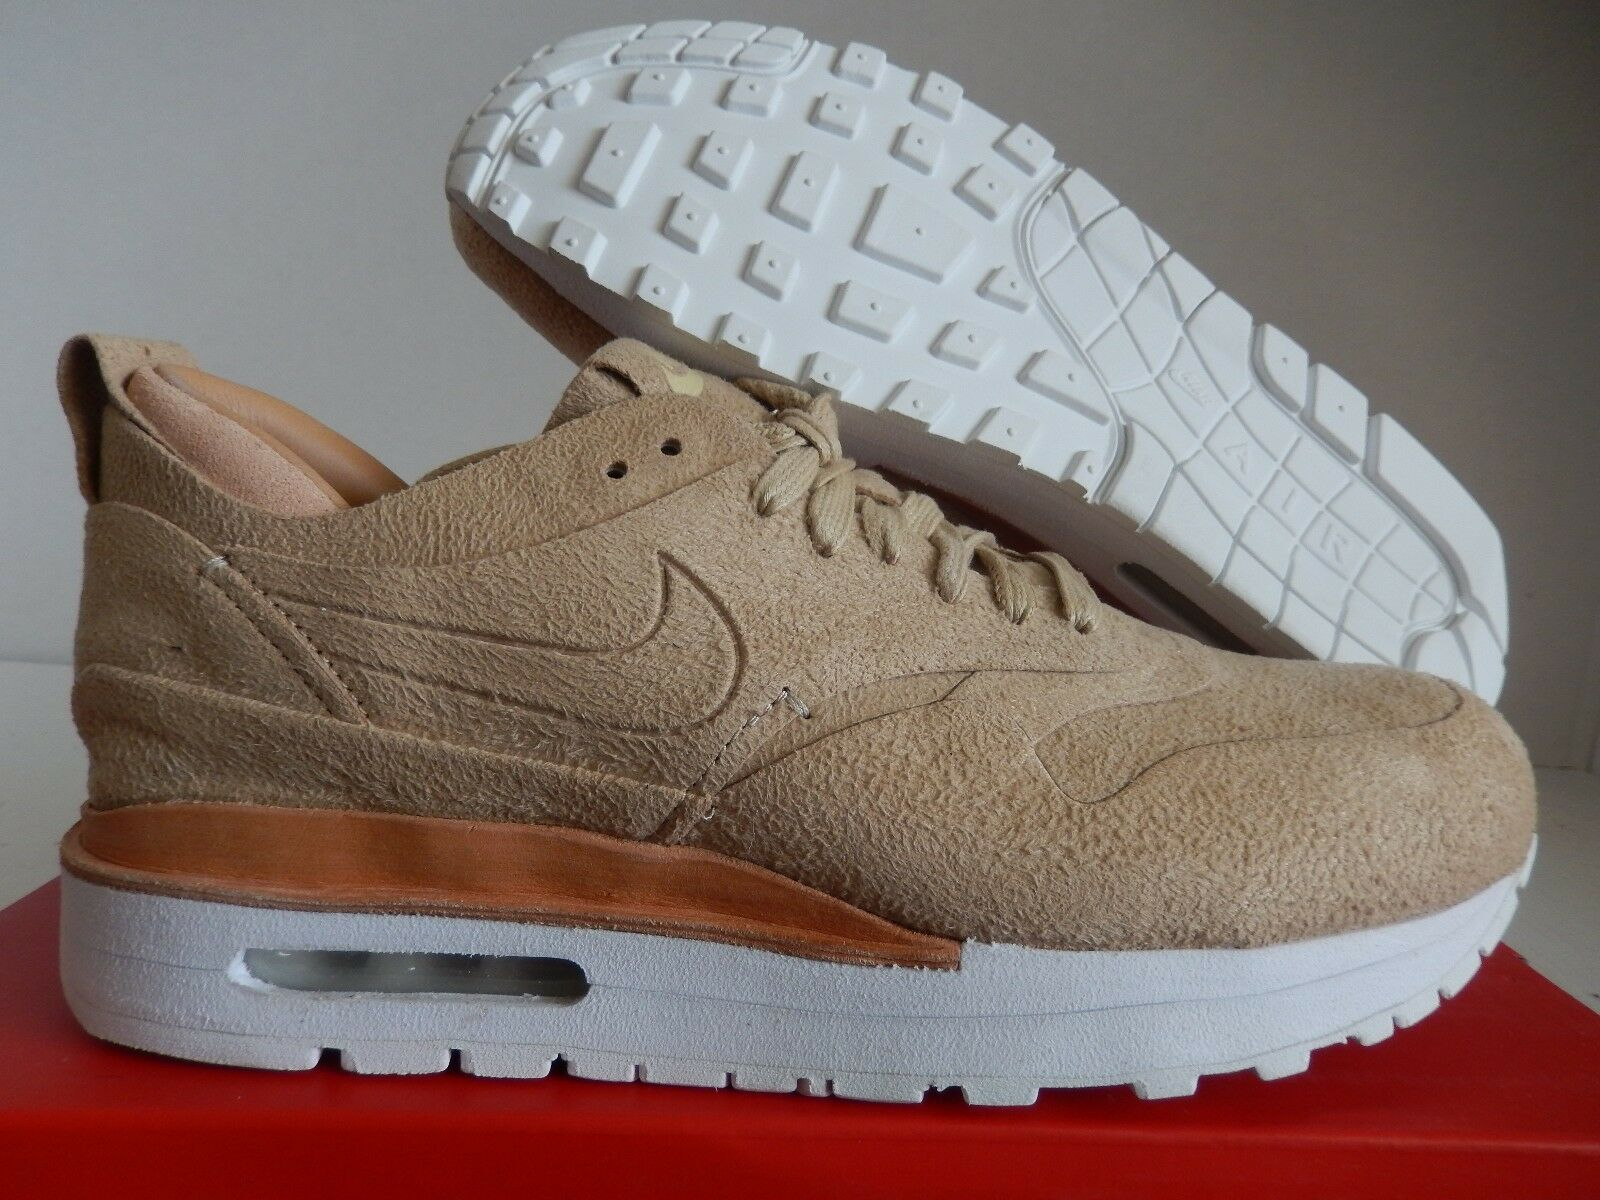 WMNS NIKE AIR MAX 1 ROYAL LINEN BROWN-SUMMIT WHITE SZ 8.5 [847672-221]